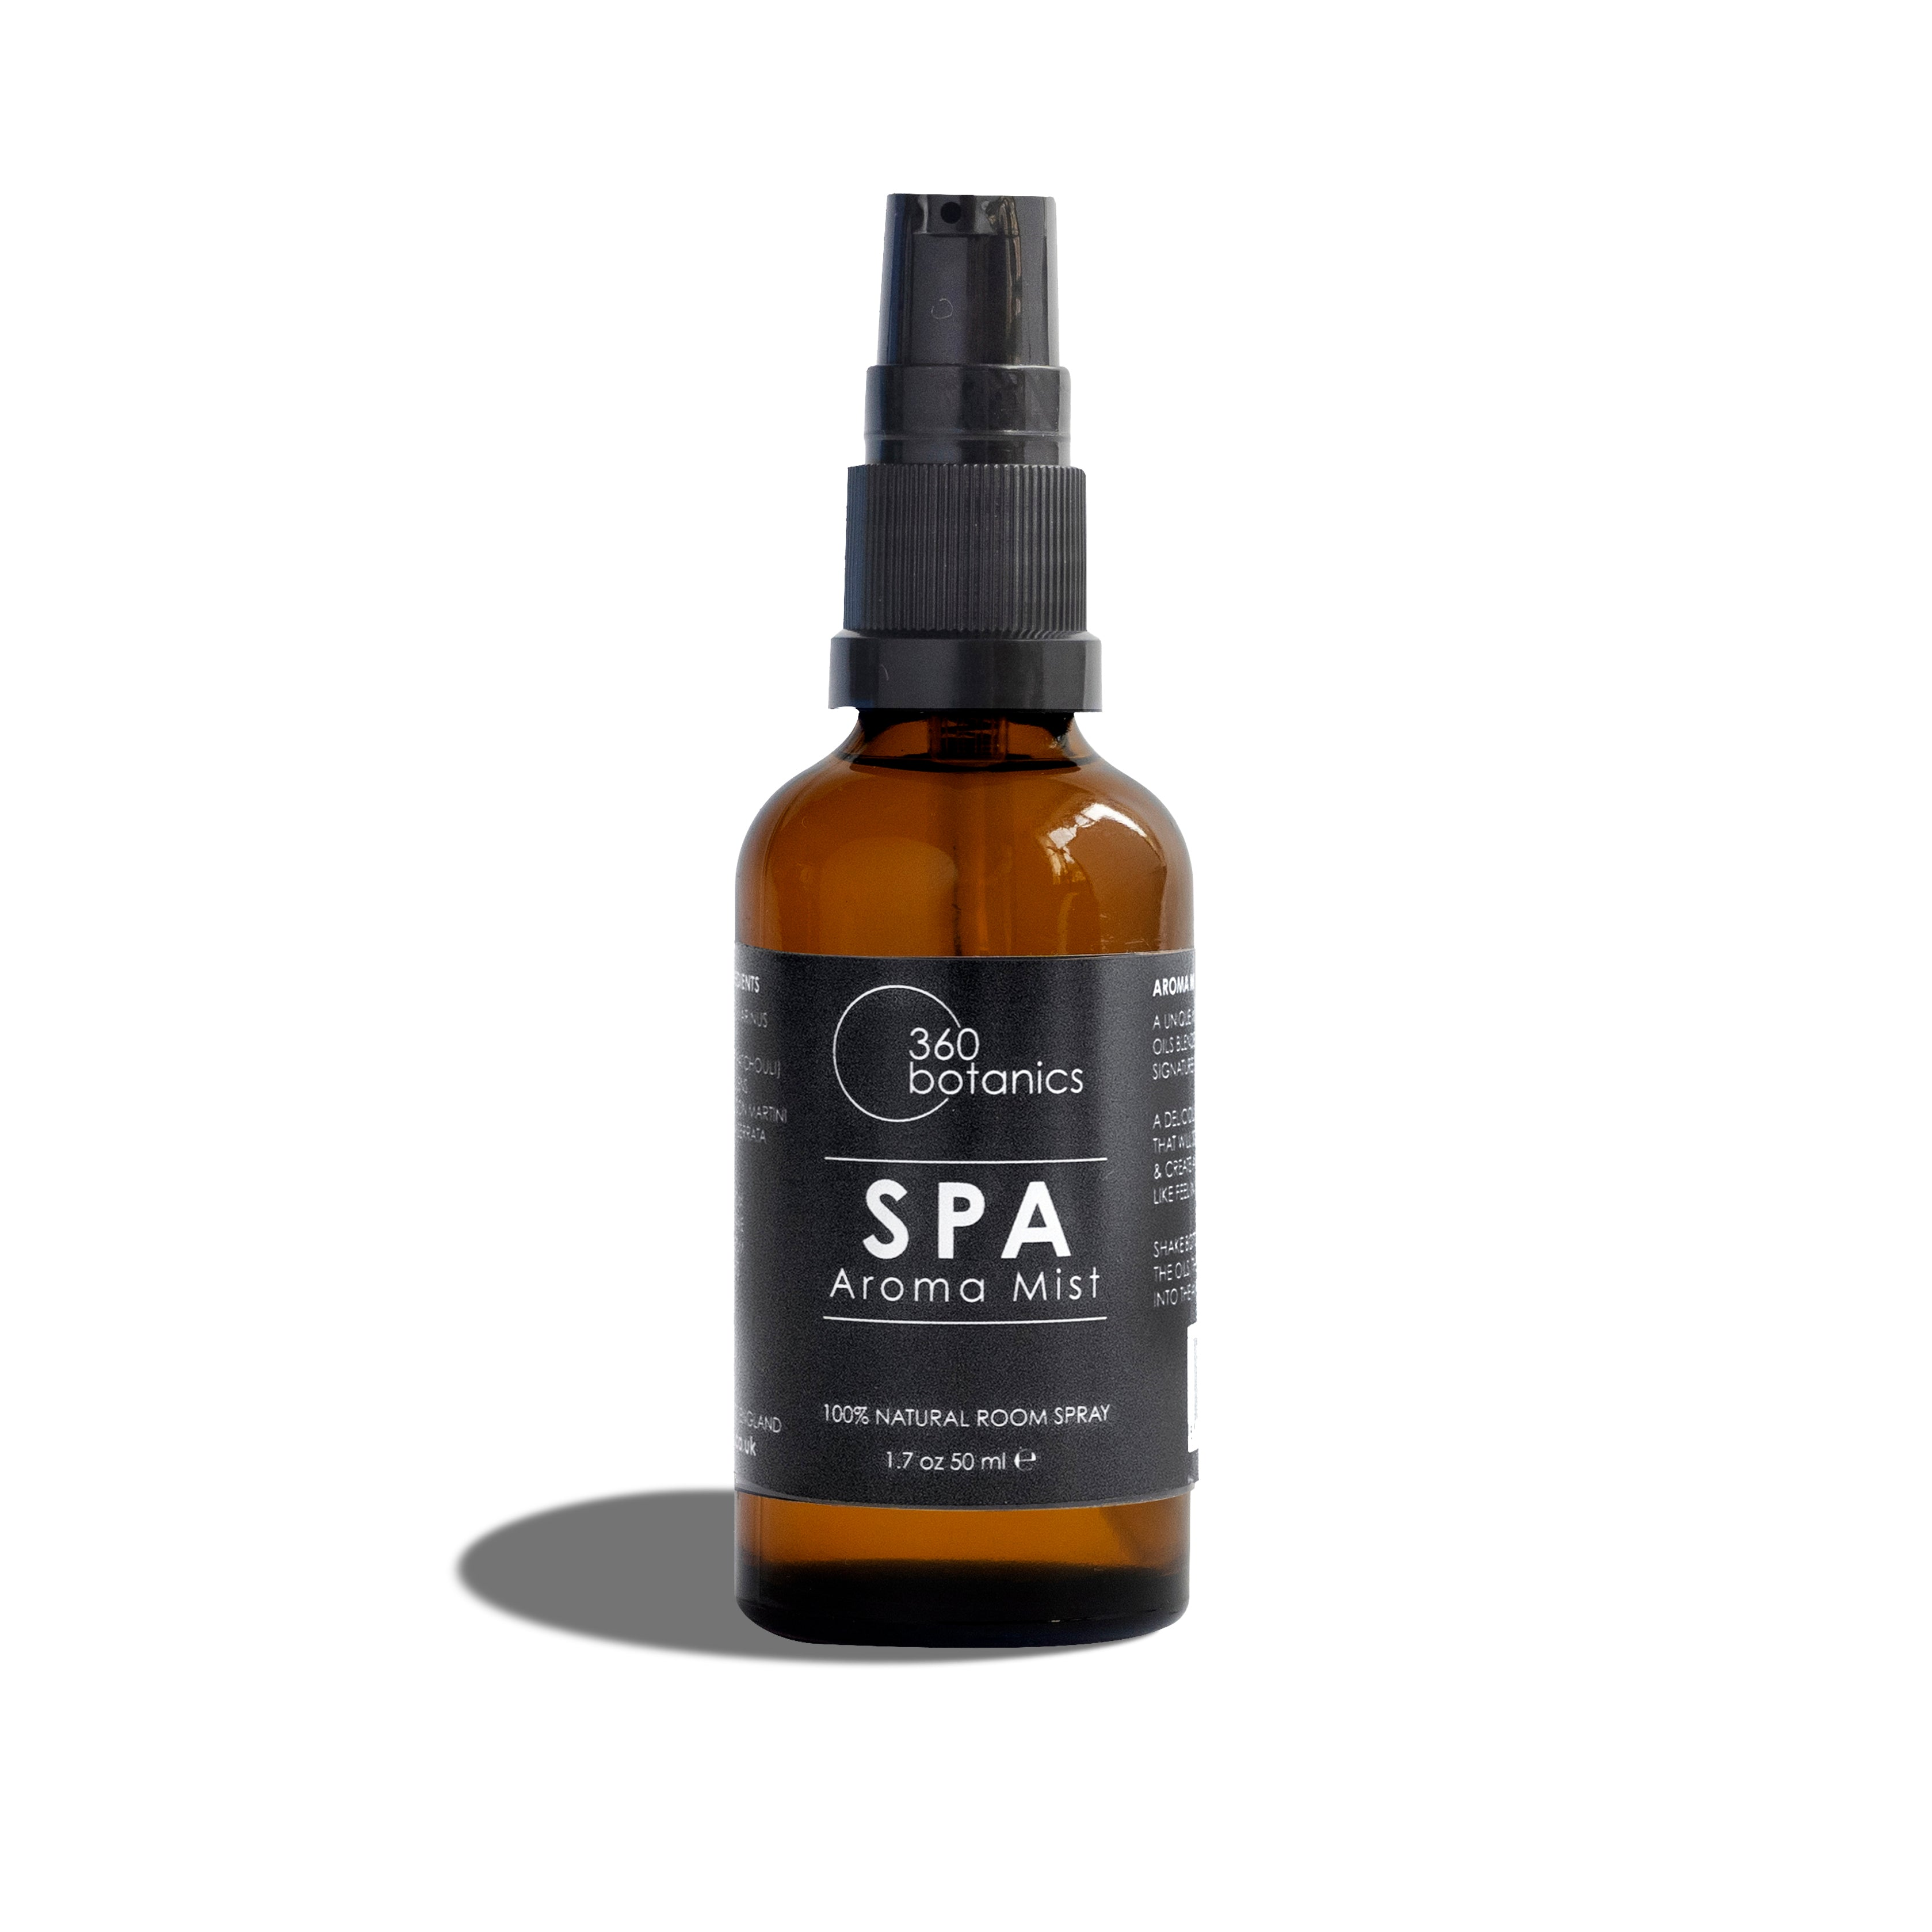 Image of  spa aroma mist photographed on white background